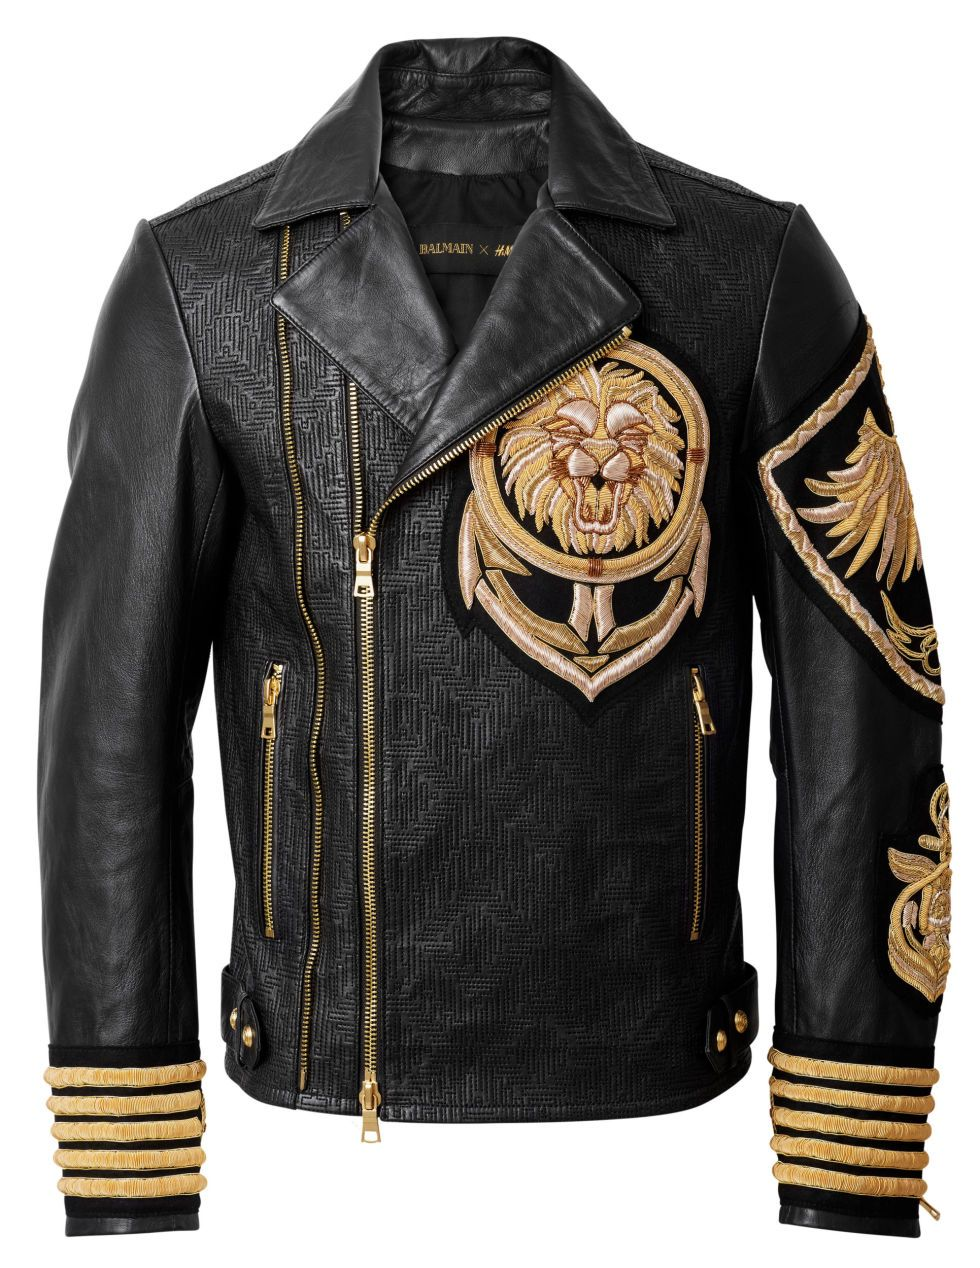 The 16 Most Outrageous Pieces in the Balmain x H&M